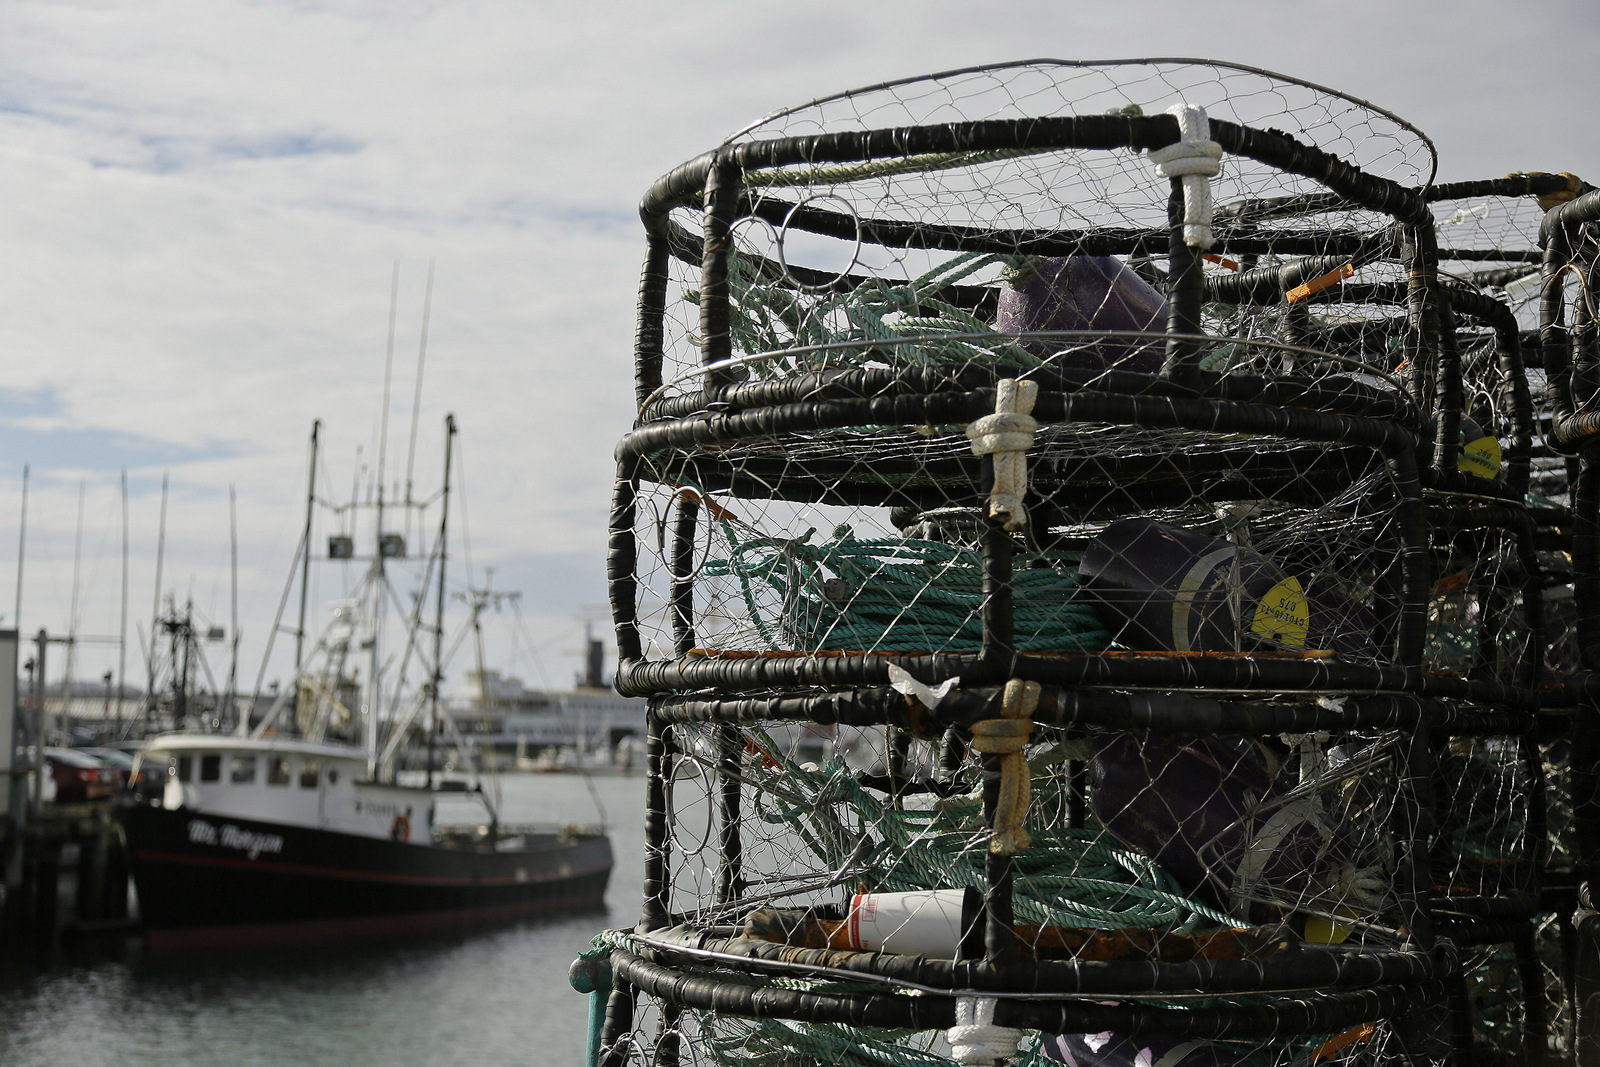 Crab pots are stacked along a pier at Fisherman's Wharf, Thursday, Nov. 5, 2015, in San Francisco after authorities delayed the Dungeness crab season and closed the rock crab fishery for most of California days after warning of dangerous levels of a neurotoxin found off the coast. (AP/Eric Risberg)